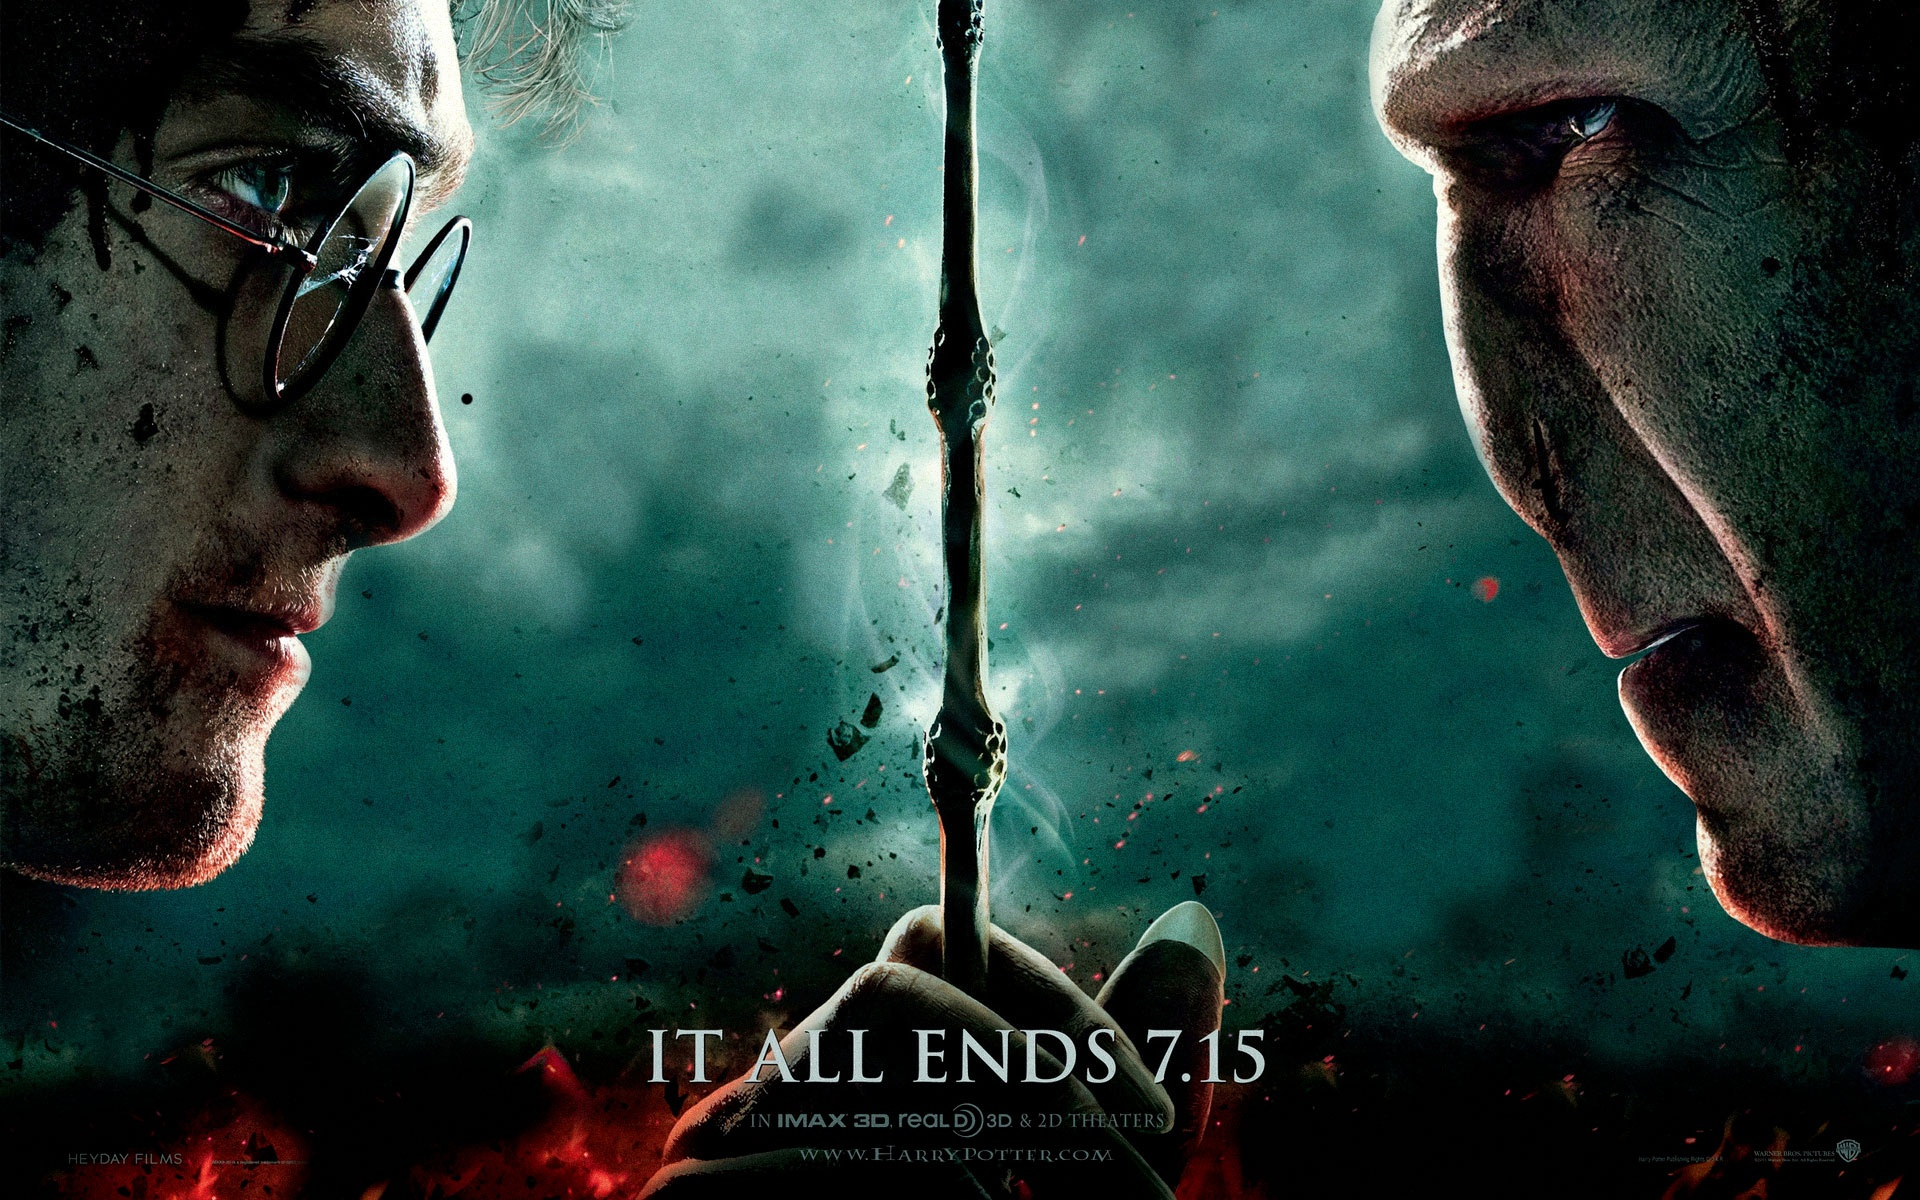 Harry Potter 7 Part 2 Wallpapers In Jpg Format For Free Download